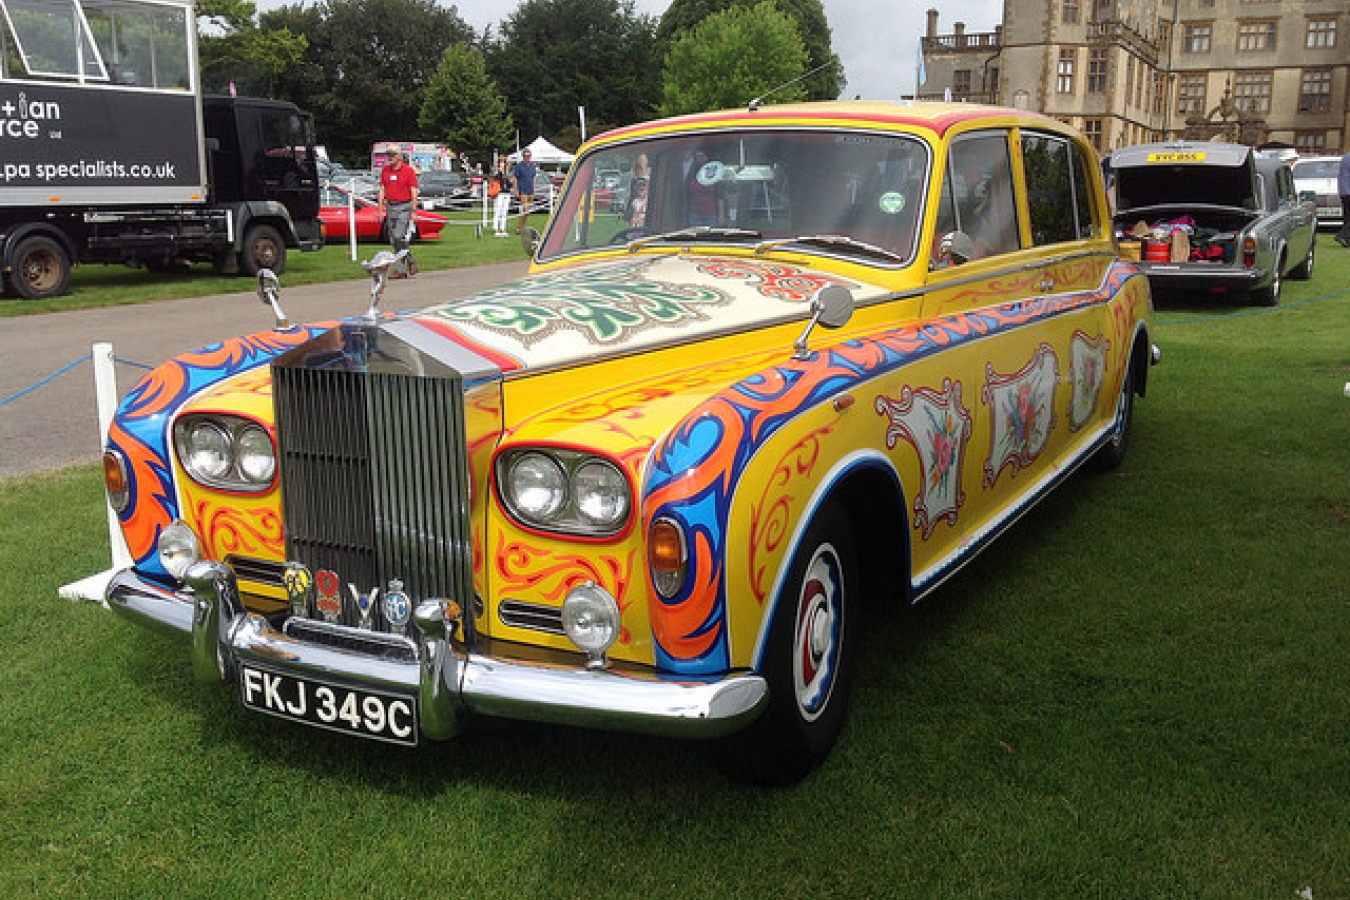 Rolls-Royce Phantom V (1965) Replica of John Lennon's car - Now a BMW subsidiary